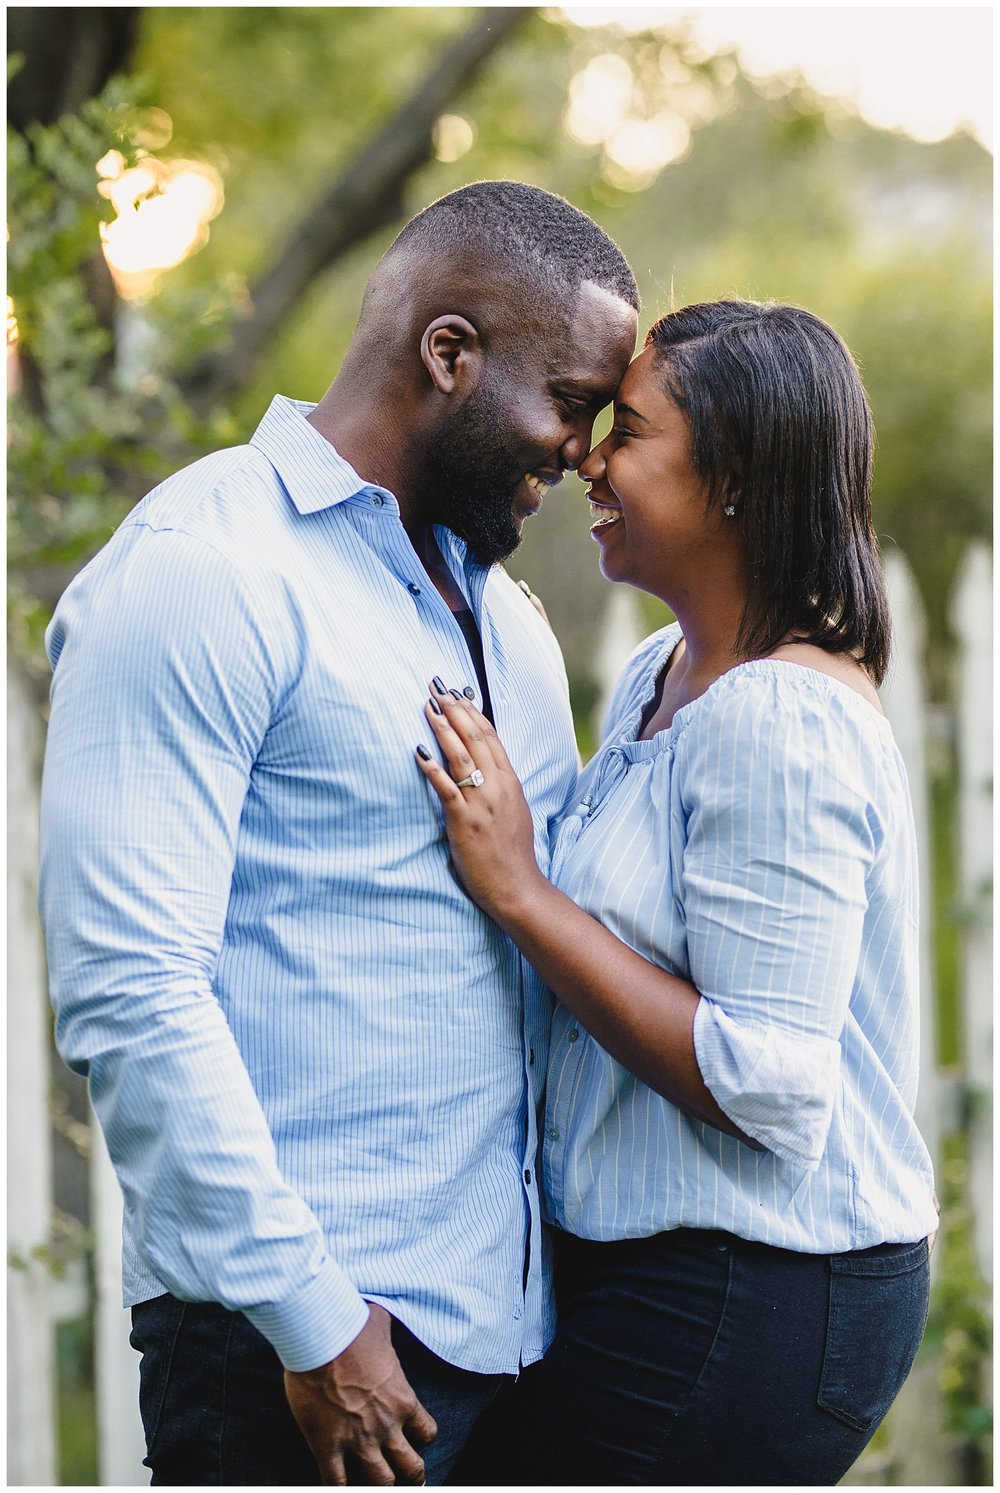 Kansas_City_Engagment_In_Home_Session_Kelsey_Diane_Photography_Wedding_Photographer_Engagment_Photographer_0125_Bri_Prime.jpg